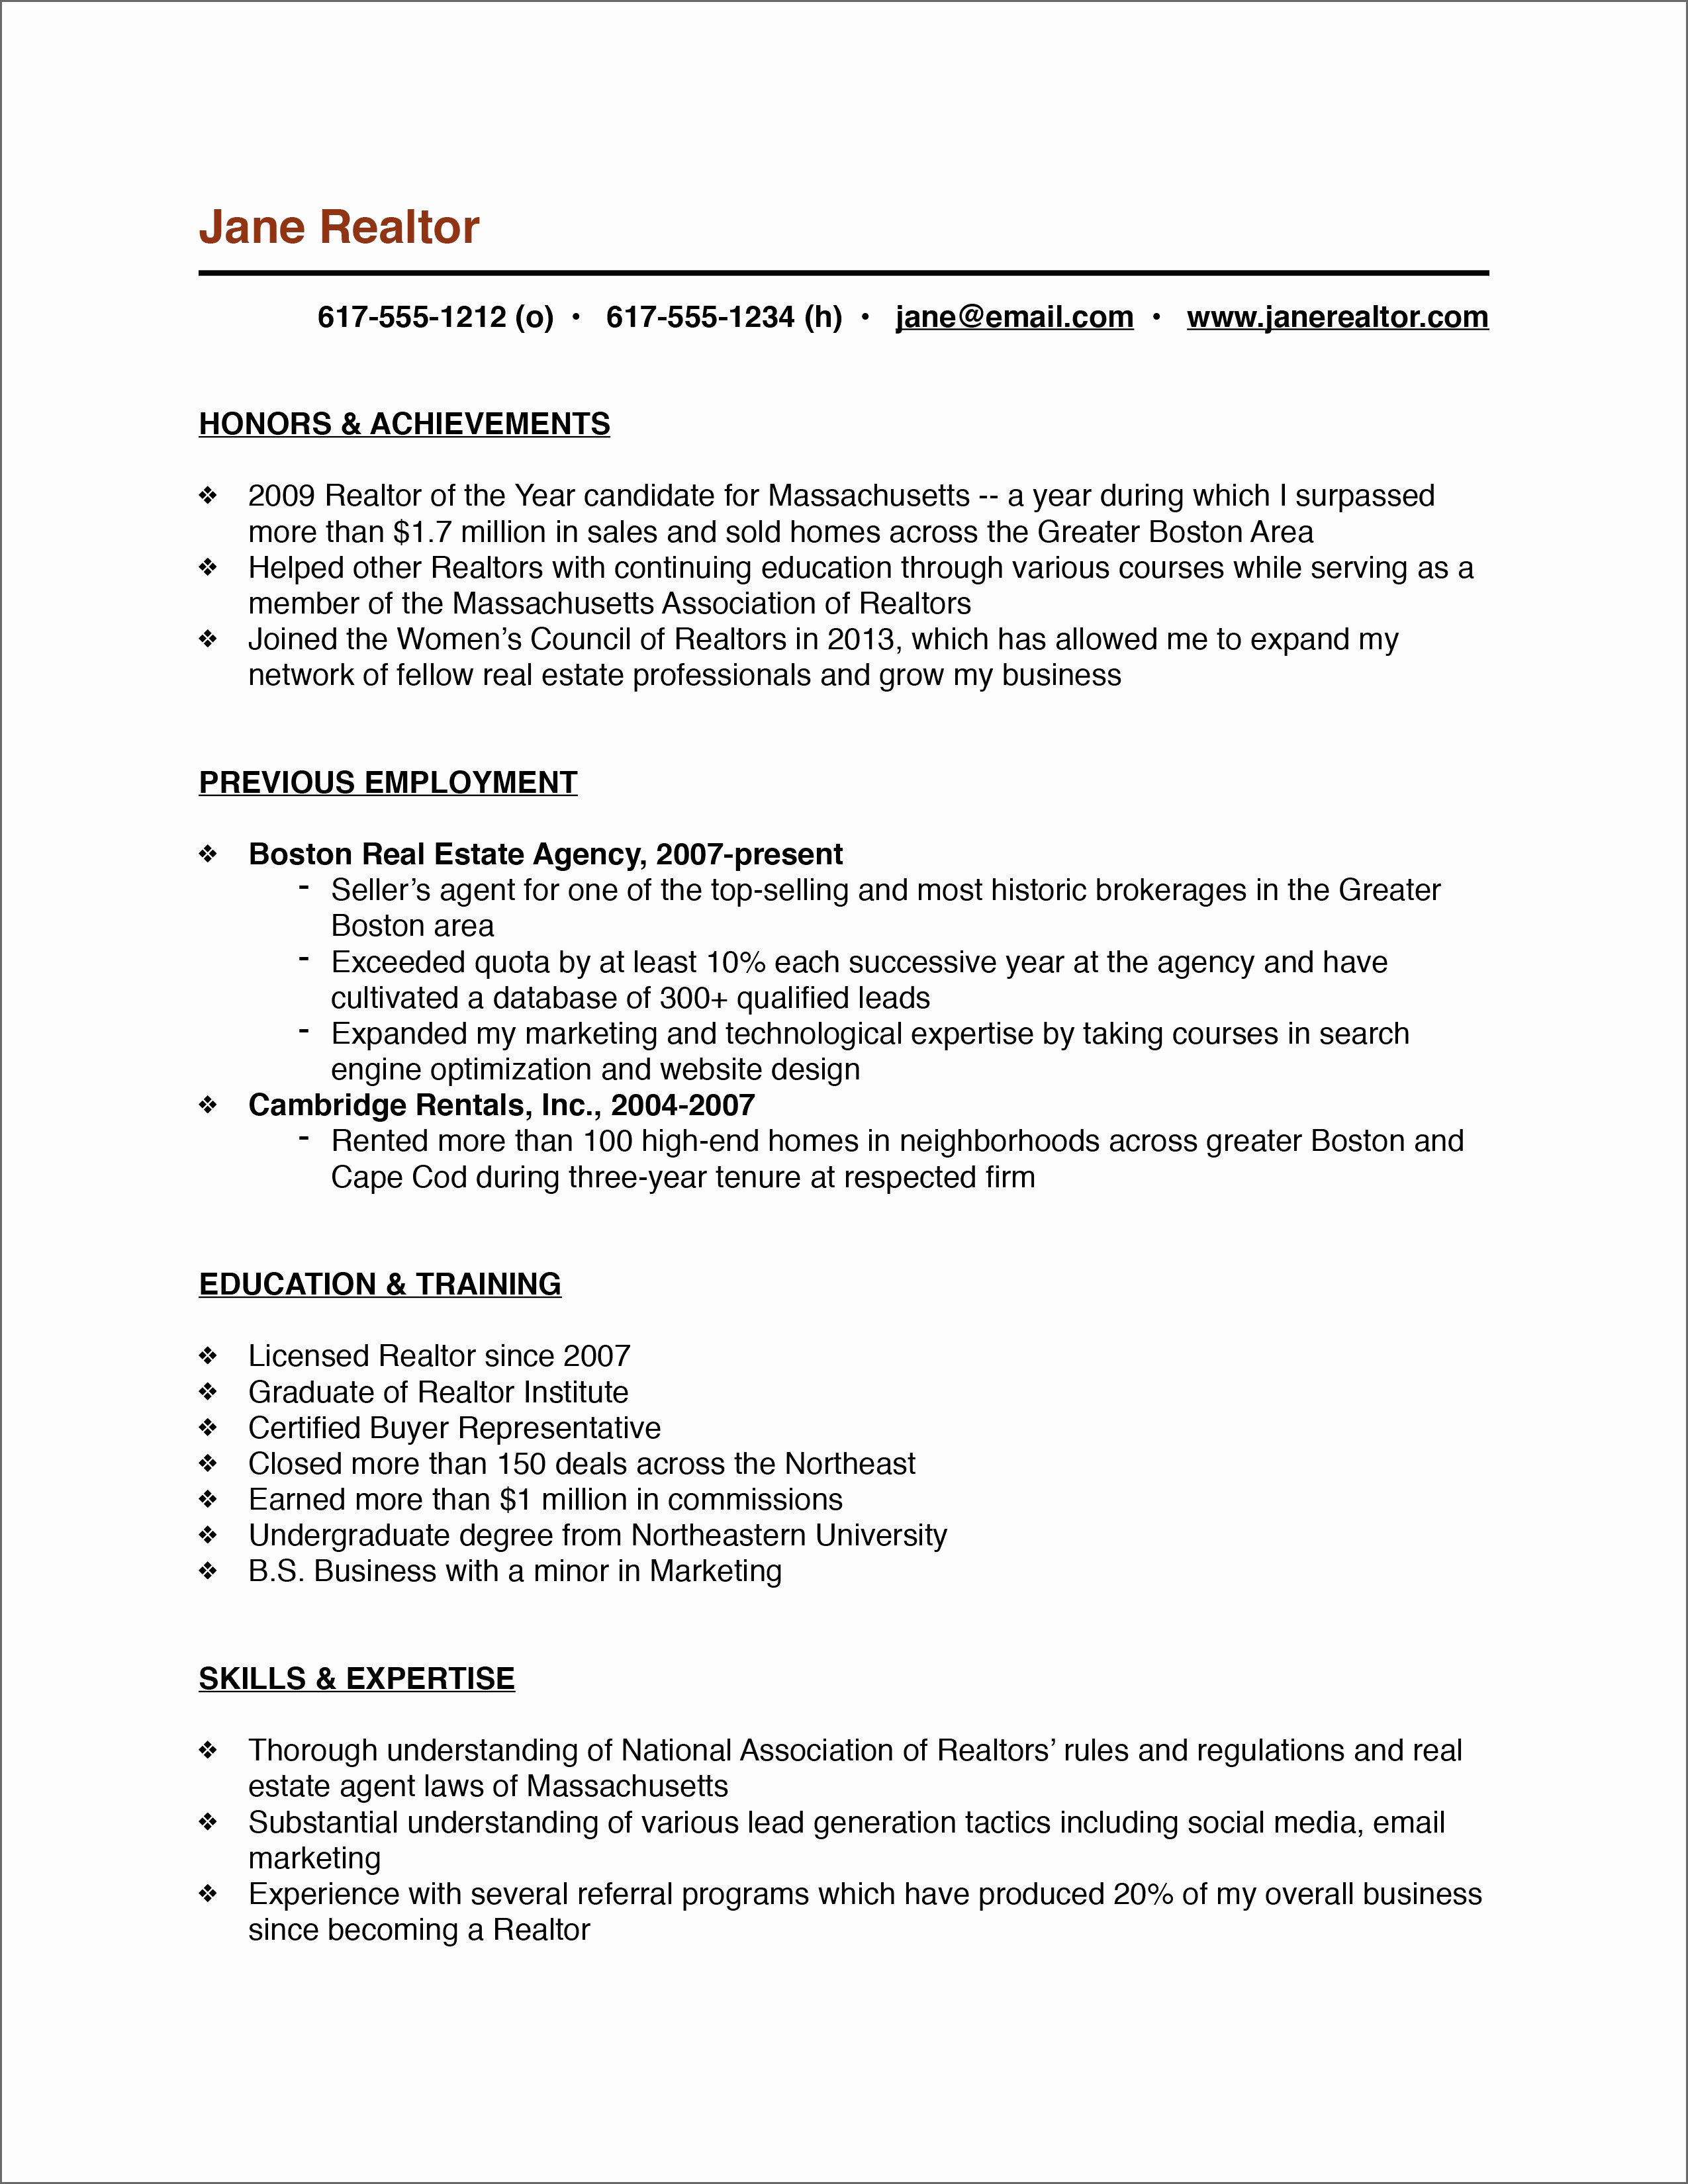 017 Resume For Social Work Best Of Example Evidence Based Practice In Essay Examples Inspiratio Scholarshipdmissions Graduate Case Study Reflective Entrance Freessessment Why I Want To Outstanding Be A Worker Do Become Became Full